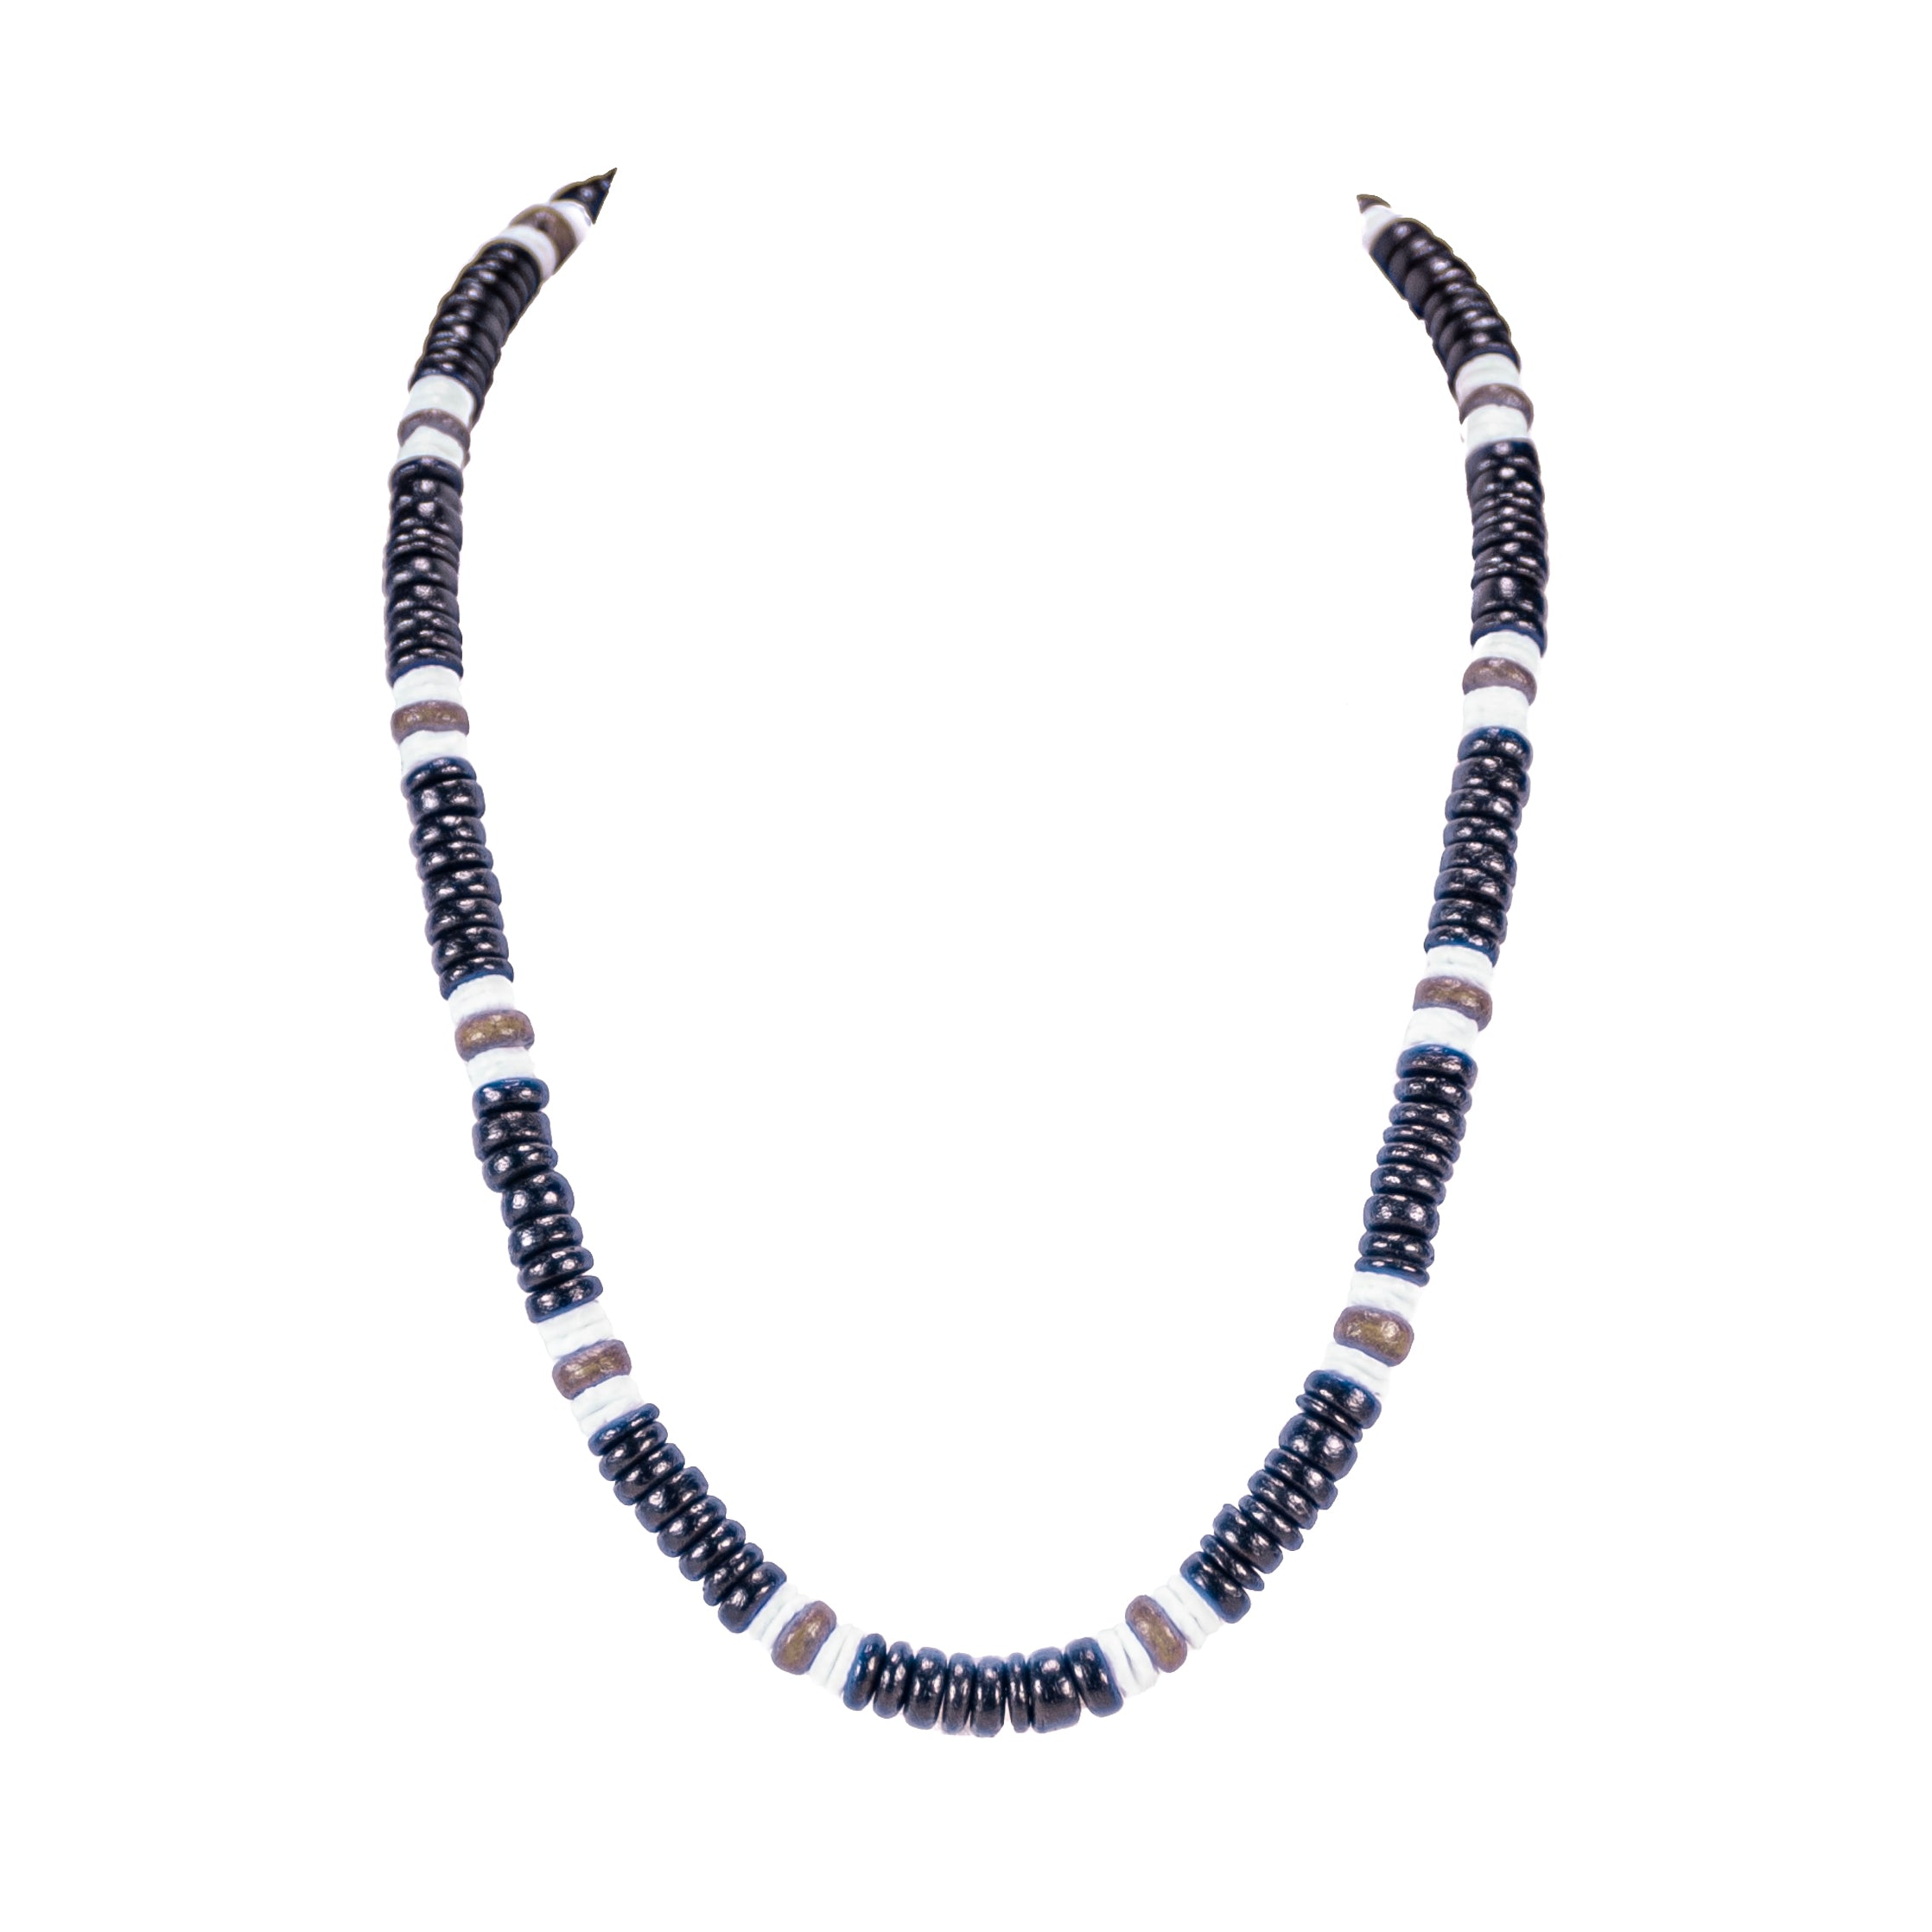 Black & Olive Coconut Beads and Puka Shell Beads Necklace & Bracelet Set